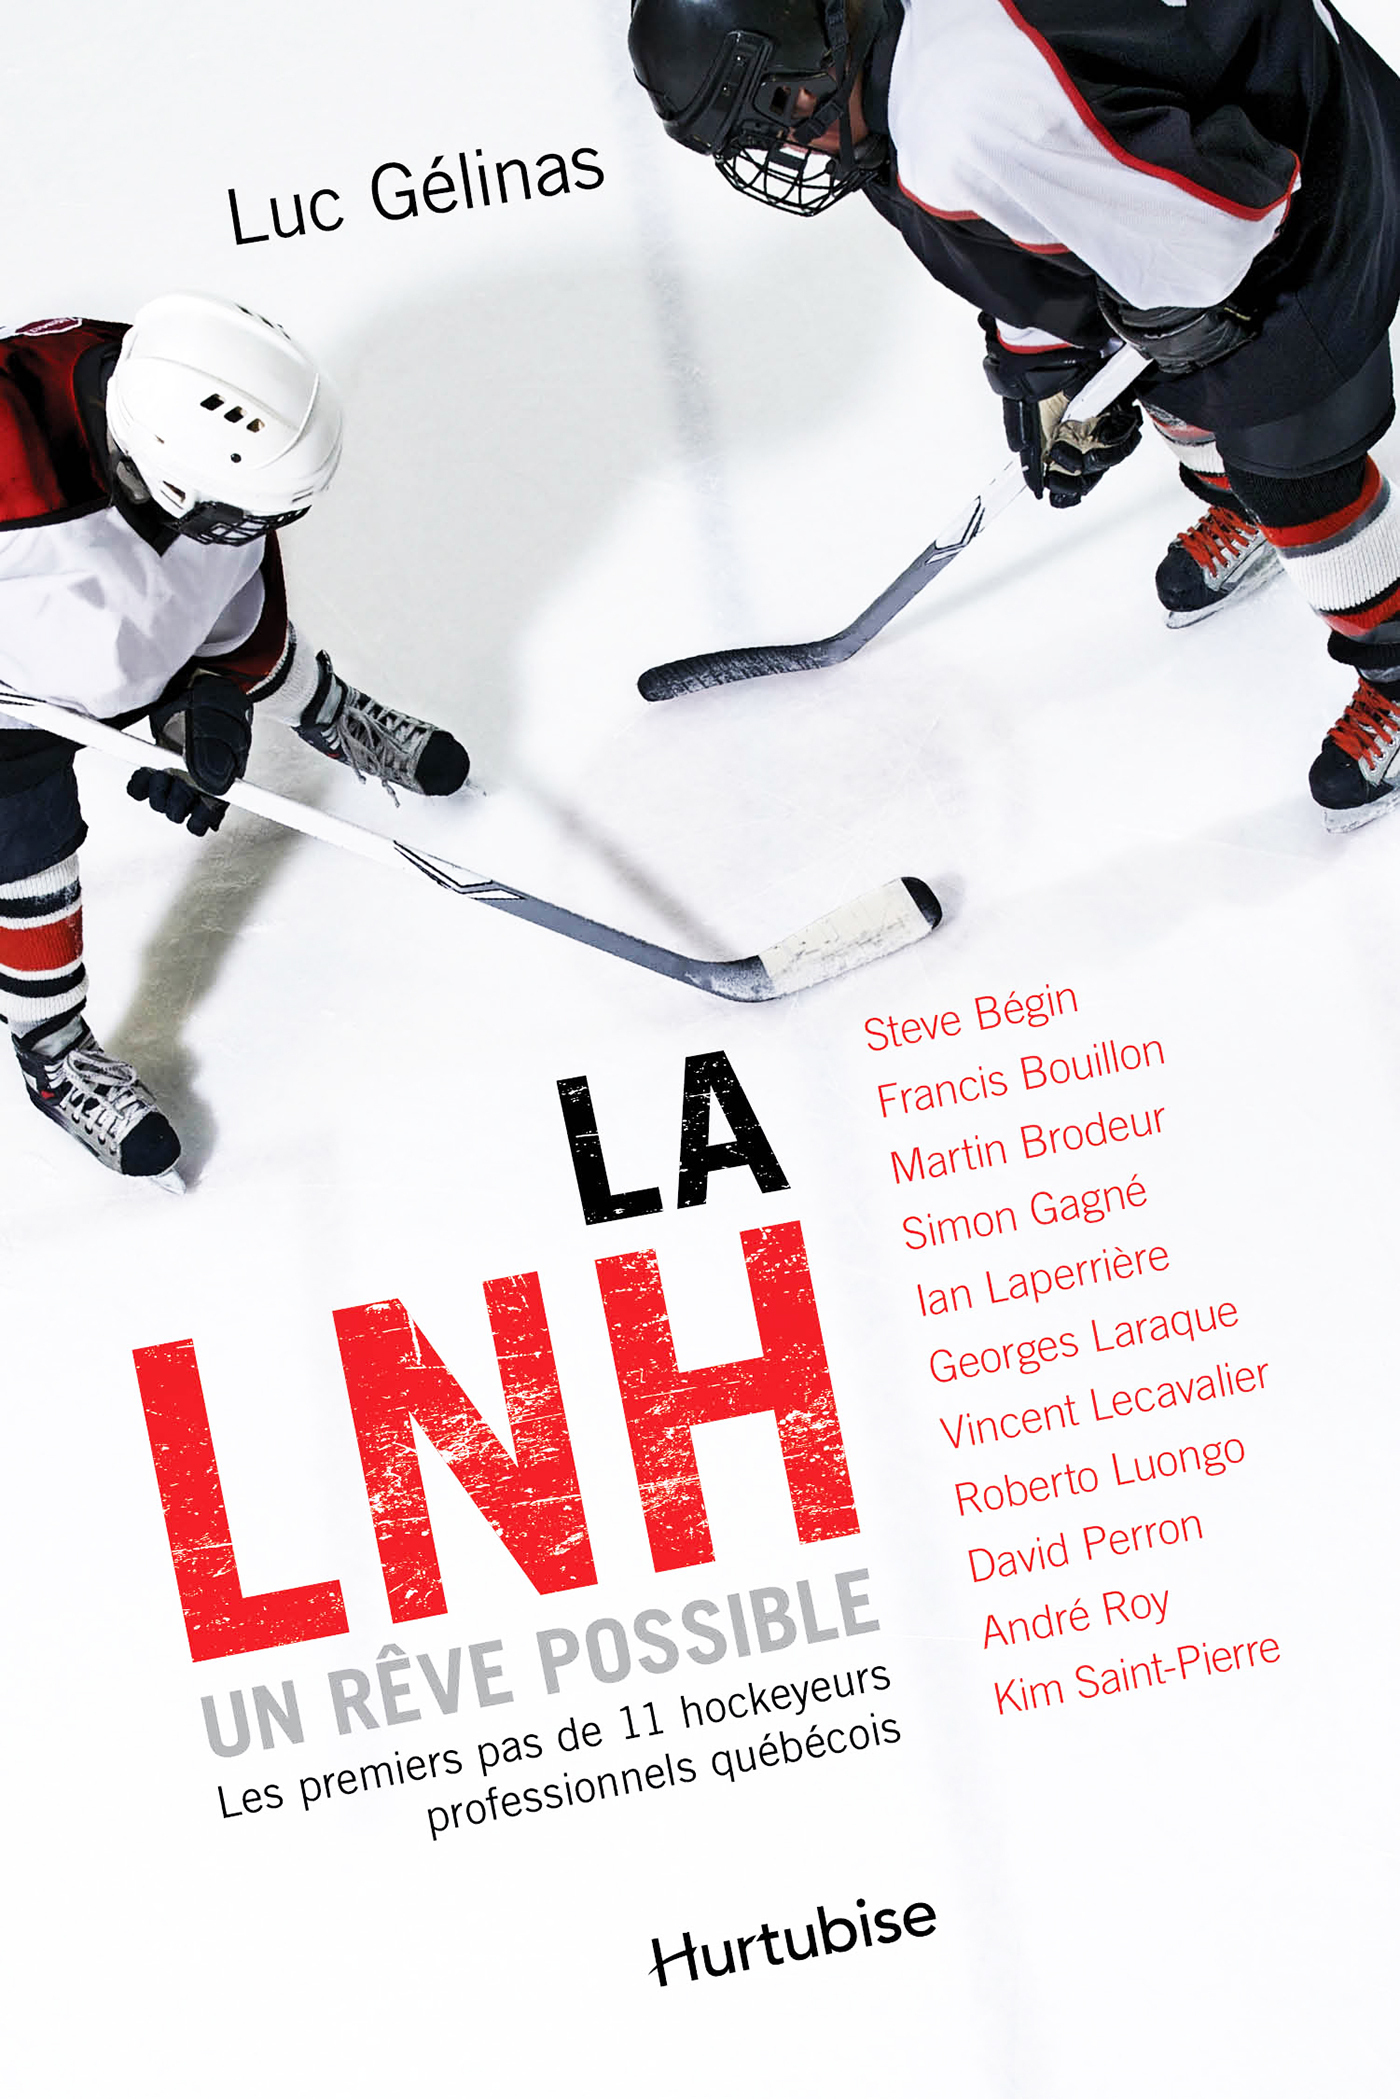 Couverture : LNH, un rêve possible (La) Luc Gélinas